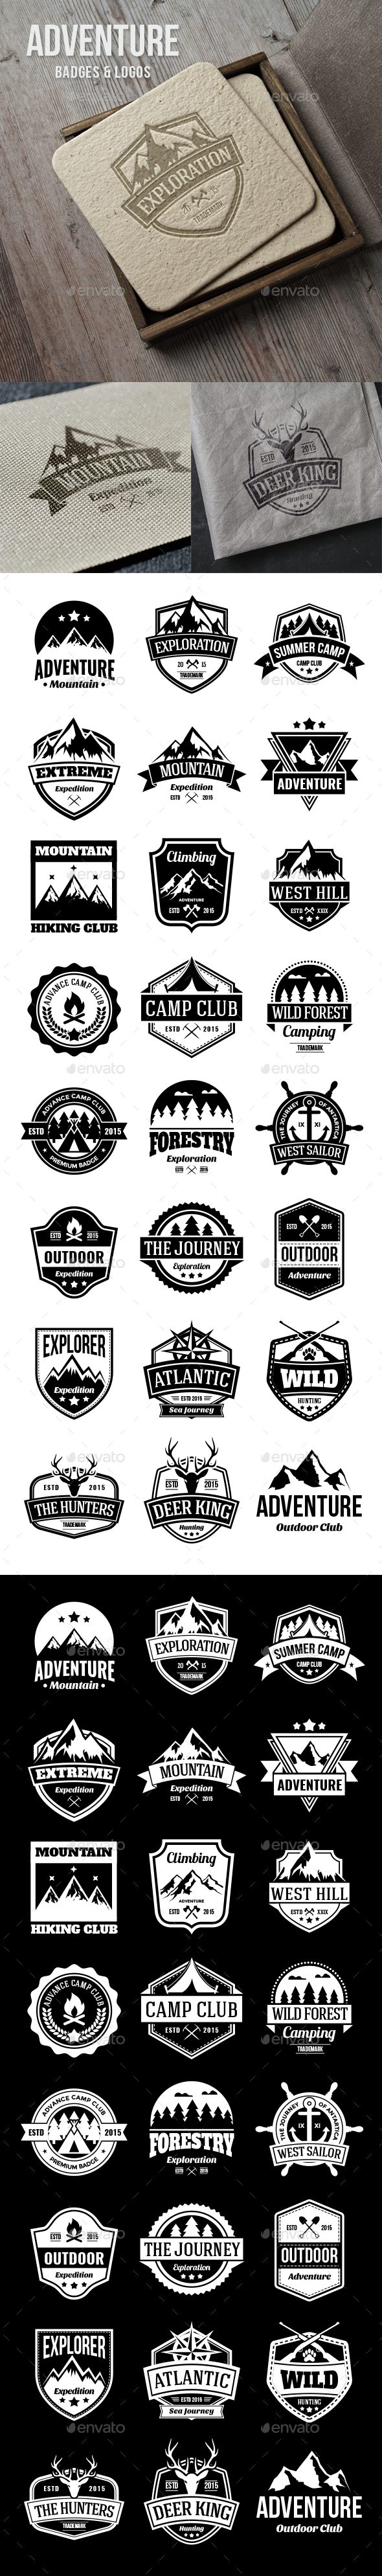 24 Adventure Badges